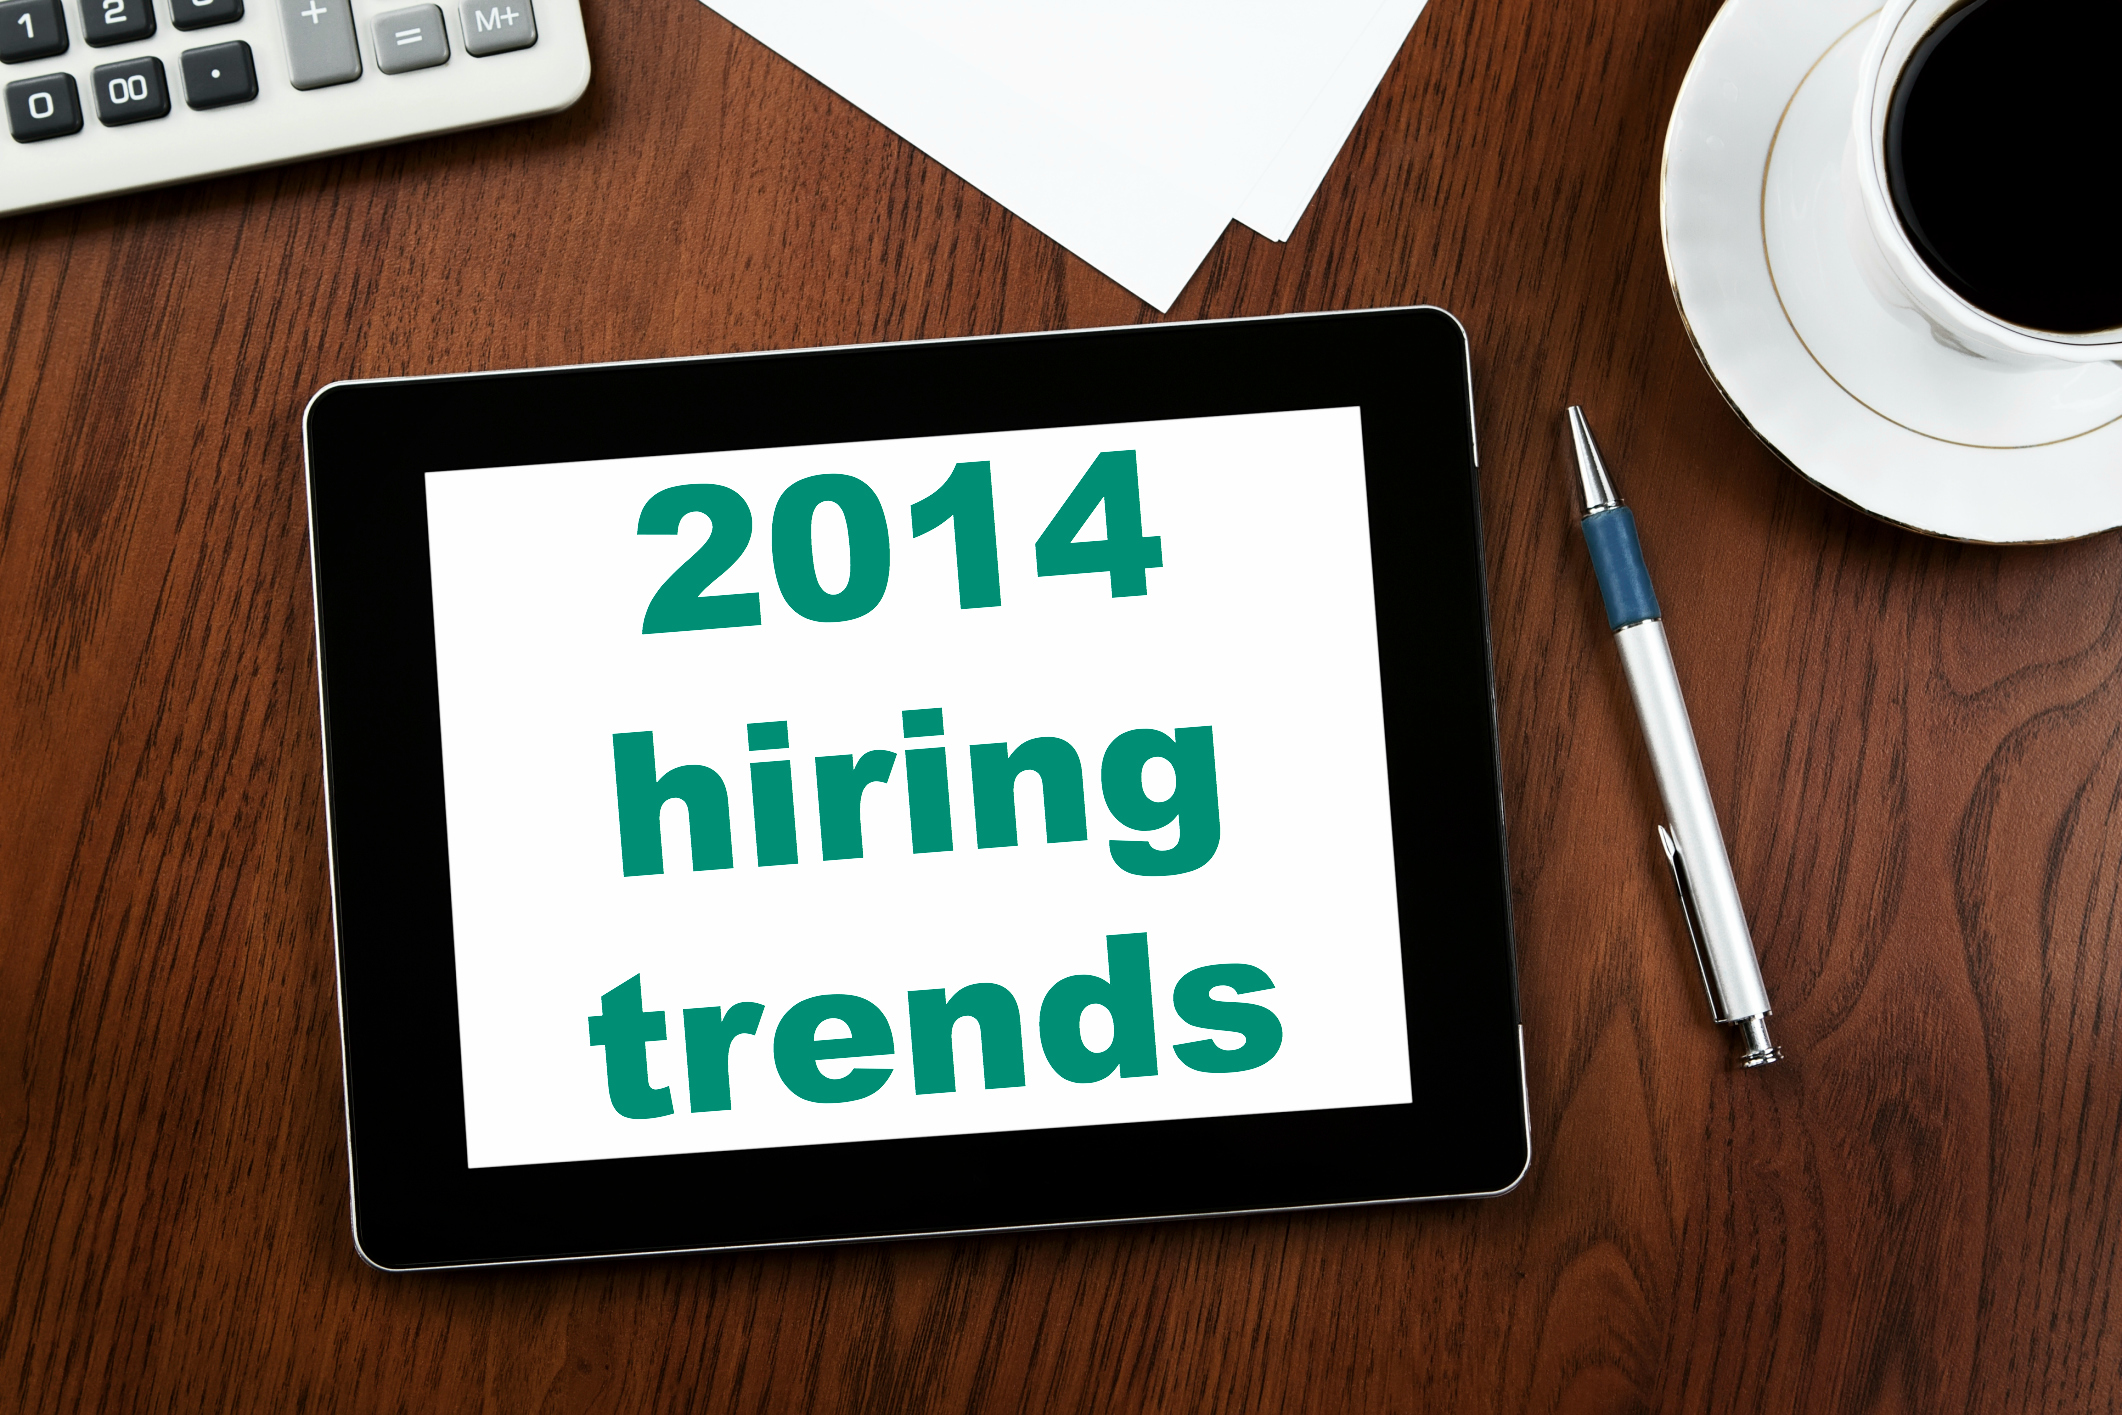 2014 hiring trends job seekers must understand